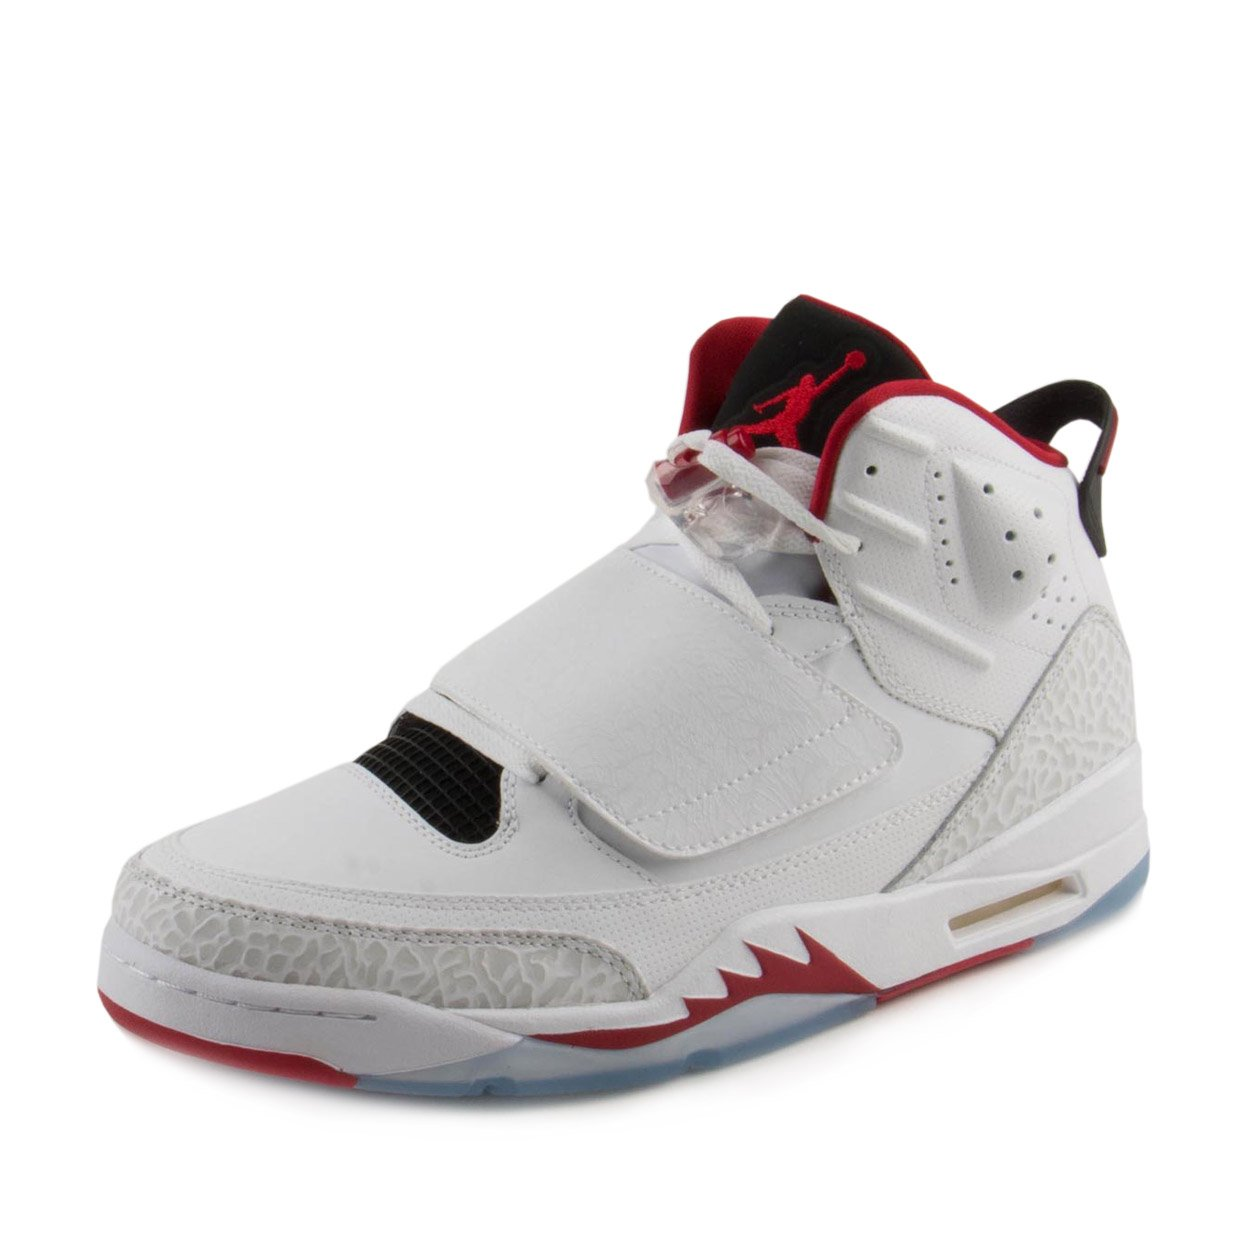 JORDAN SON OF mens basketball-shoes 512245-112_12 - WHITE/GYM RED-BLACK-PURE PLATINUM by Jordan